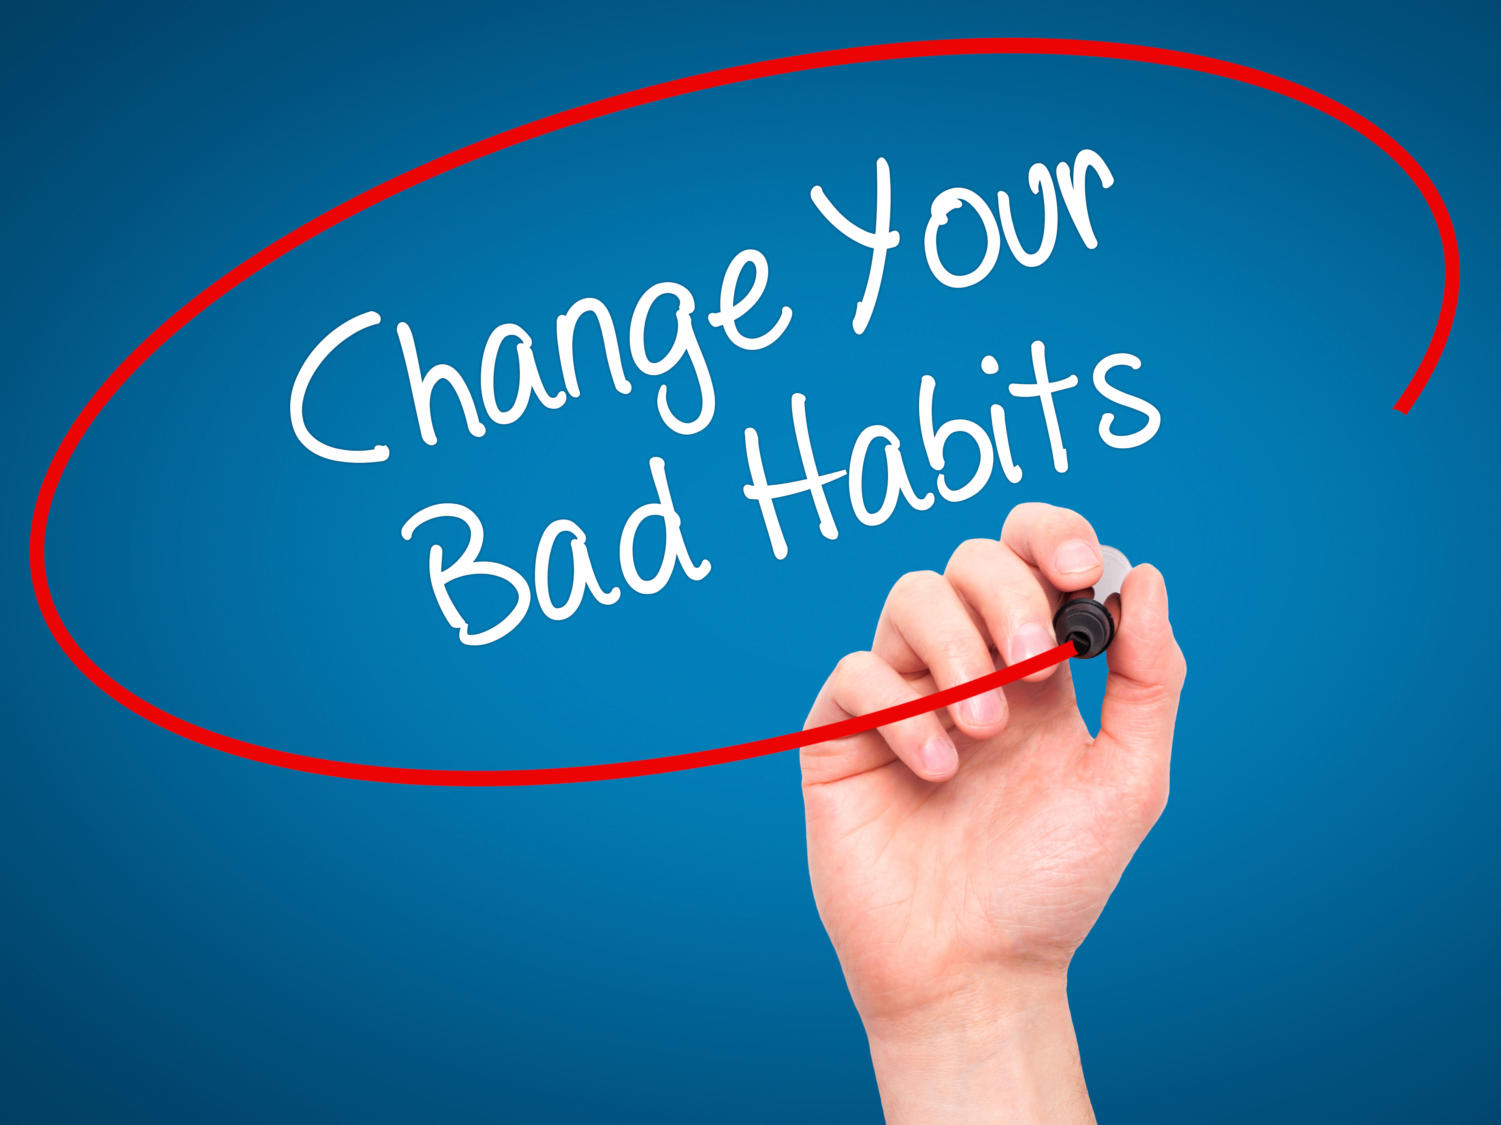 Changing bad habits to good habits can be easy with determination.